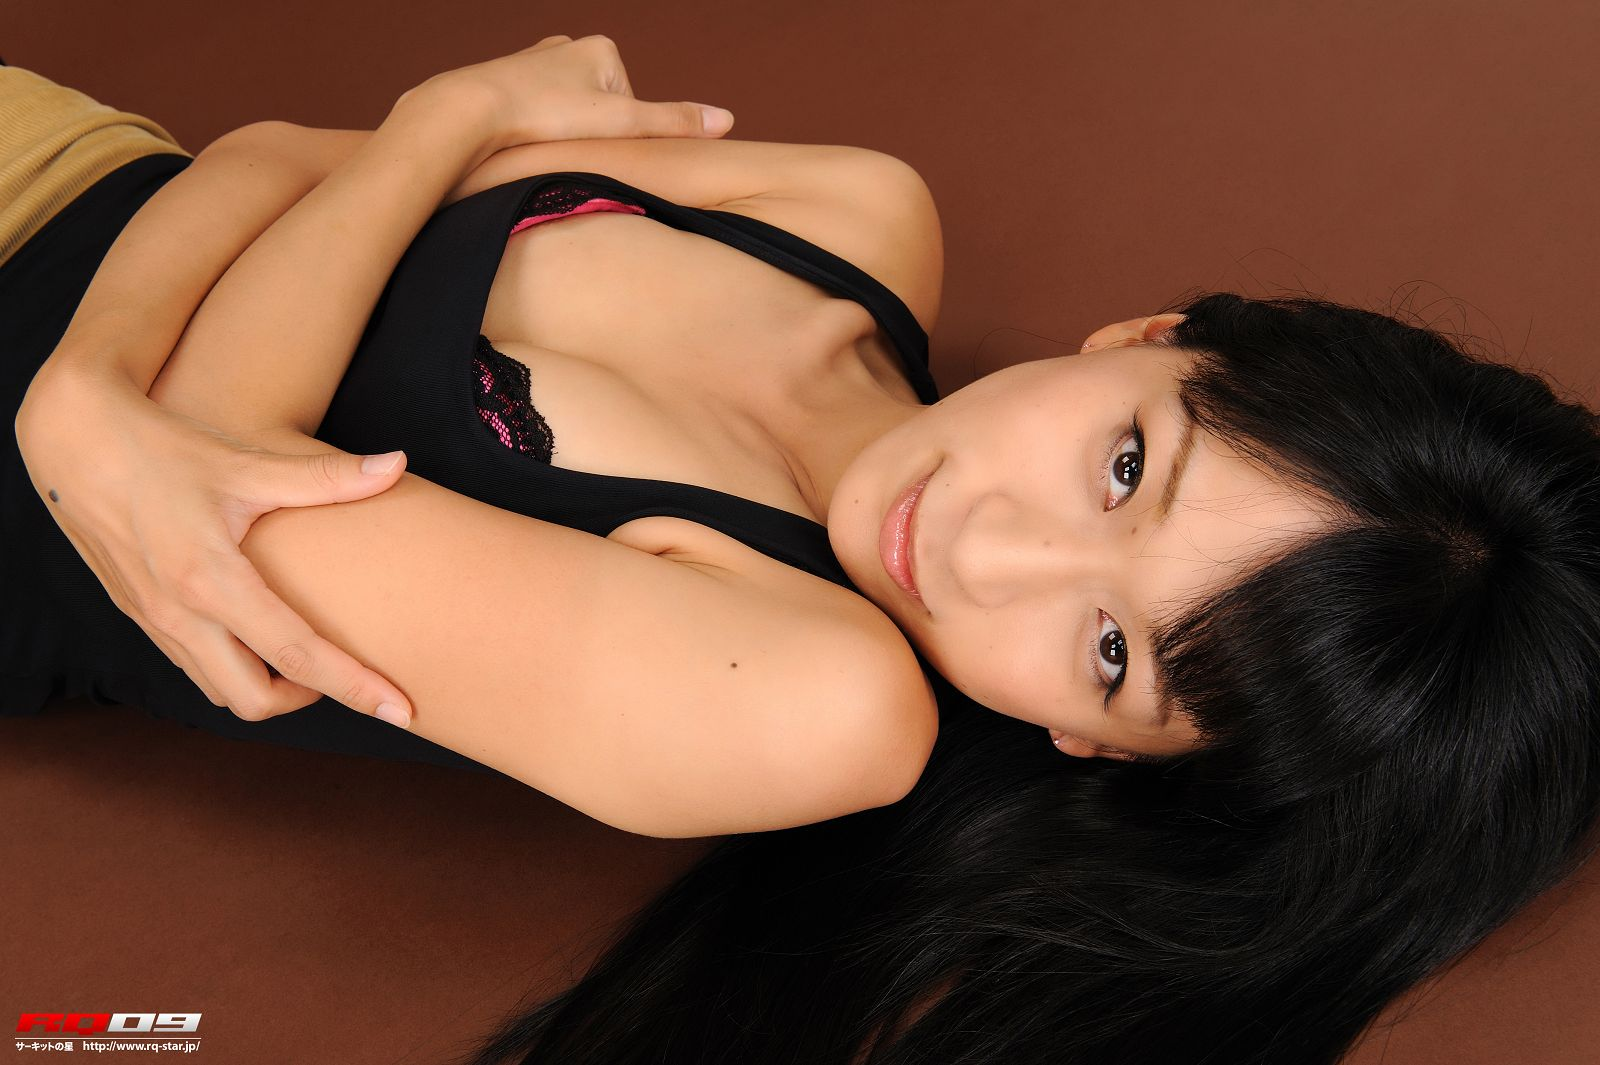 [RQ STAR美女] NO.0210 Hiroko Yoshino よしのひろこ Private Dress[100P] RQ STAR 第3张